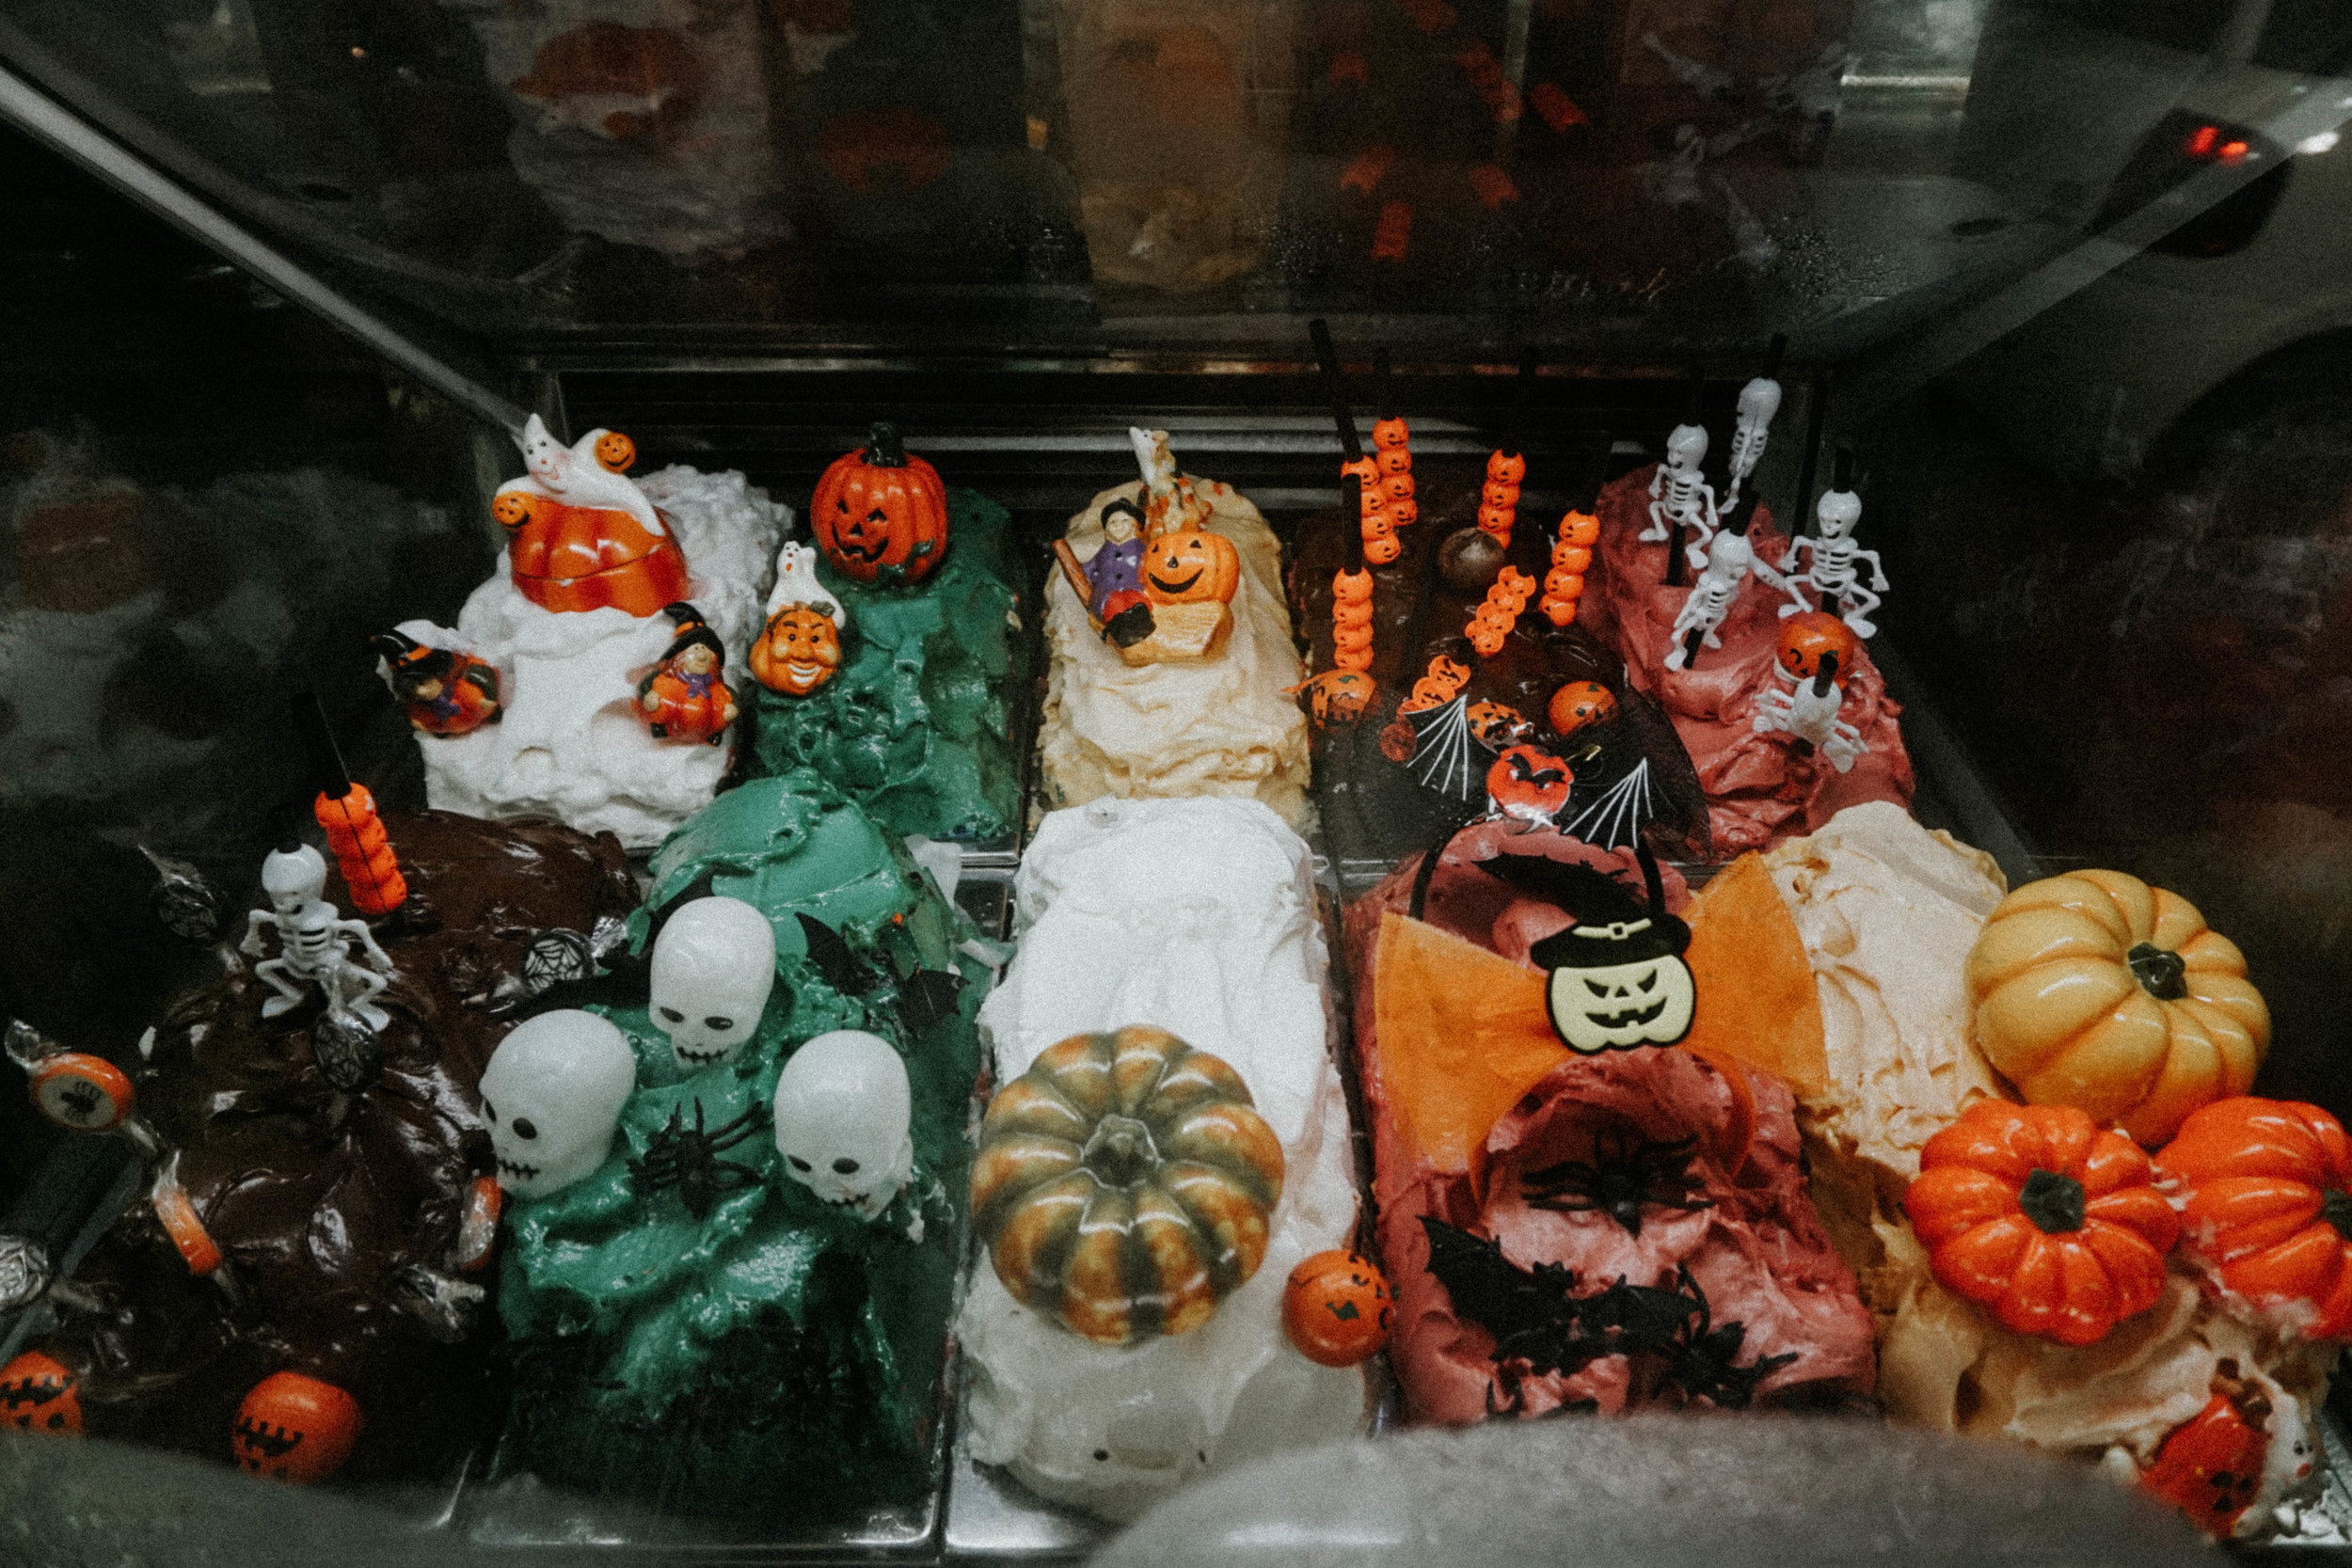 The kind of gelato NOT to eat. Halloween was at least a week prior to this photo being taken.